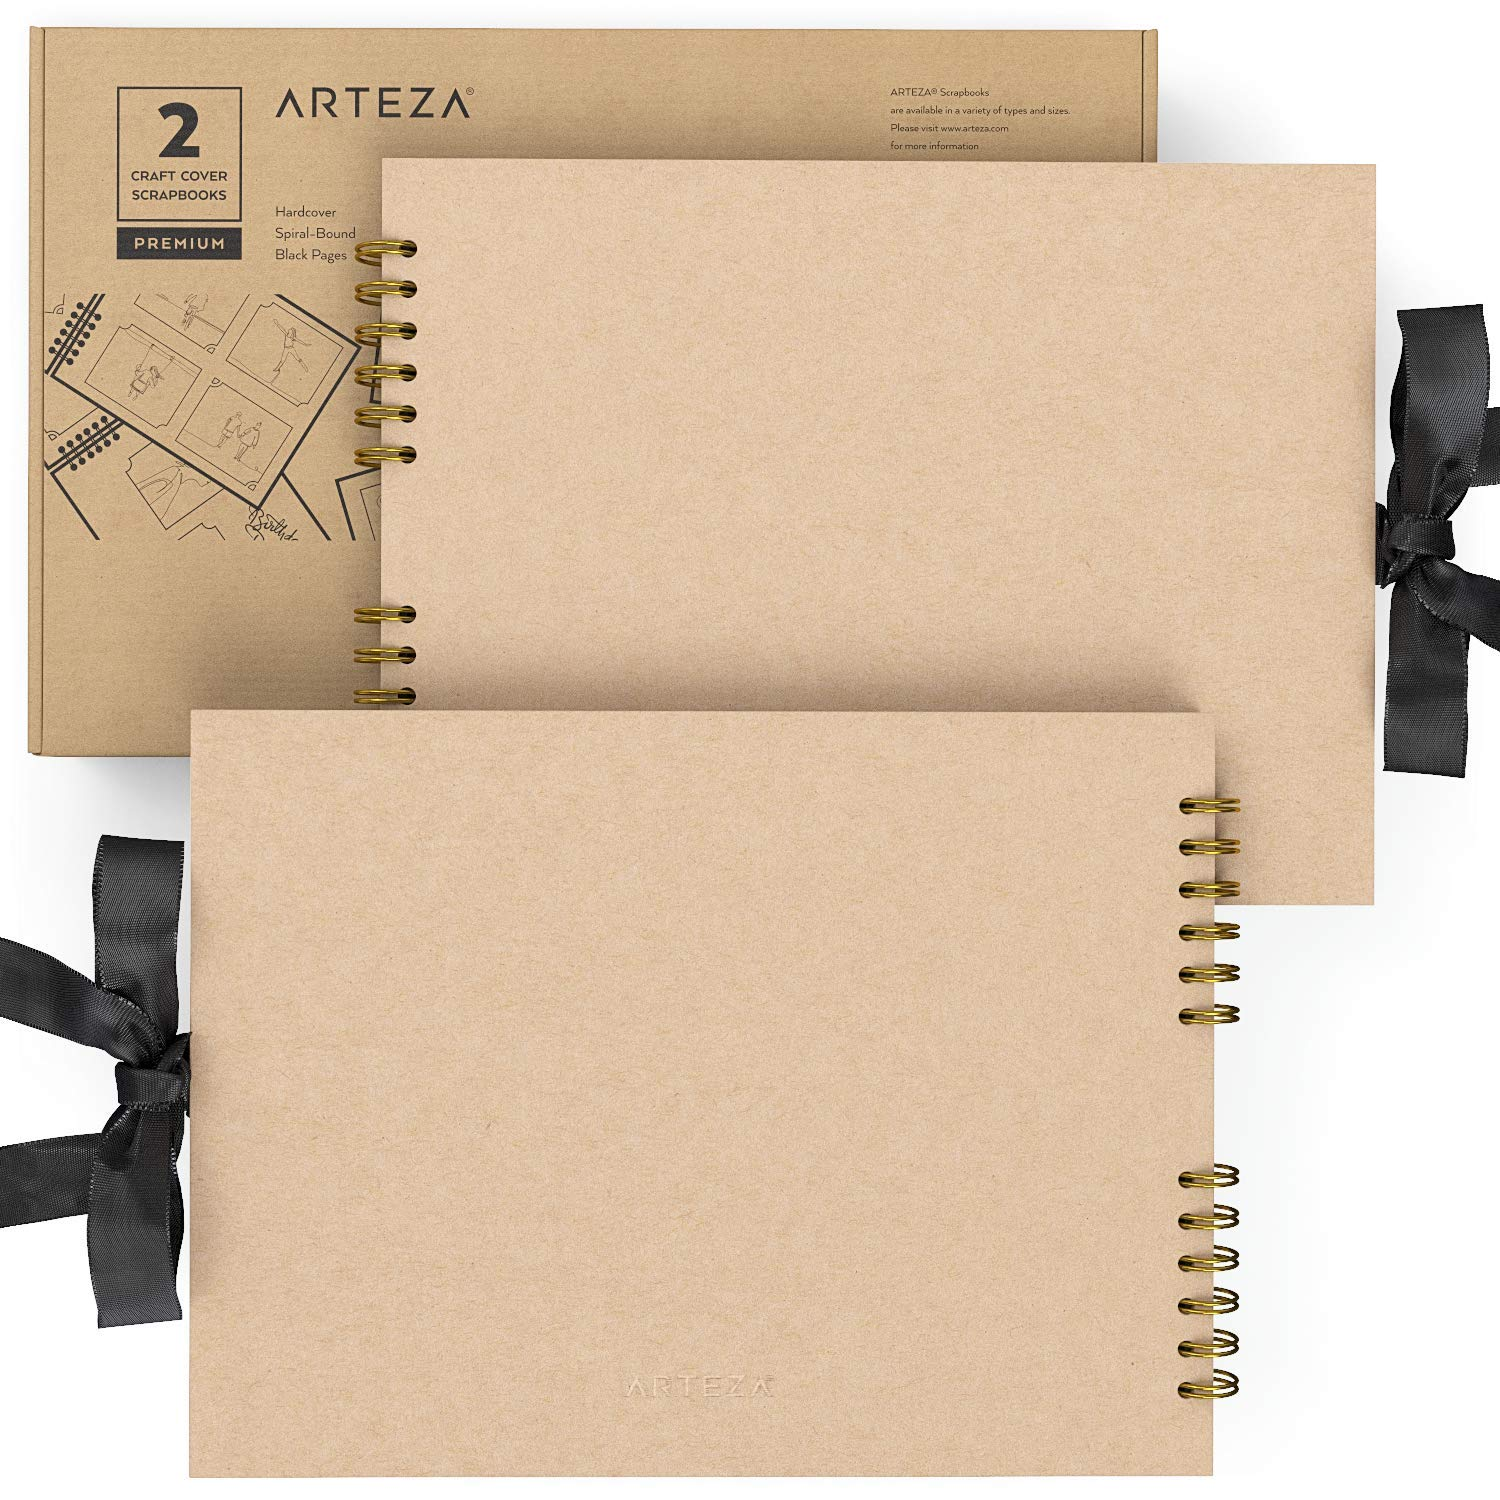 Arteza 8.5x11'' Scrapbook Album Pack of 2, Craft Cover, 40 Black Sheets, Spiral Bound, 250 GSM for DIY, Anniversary, Wedding Guest Book, Travelling, Artwork, Birthday, Holiday Gift